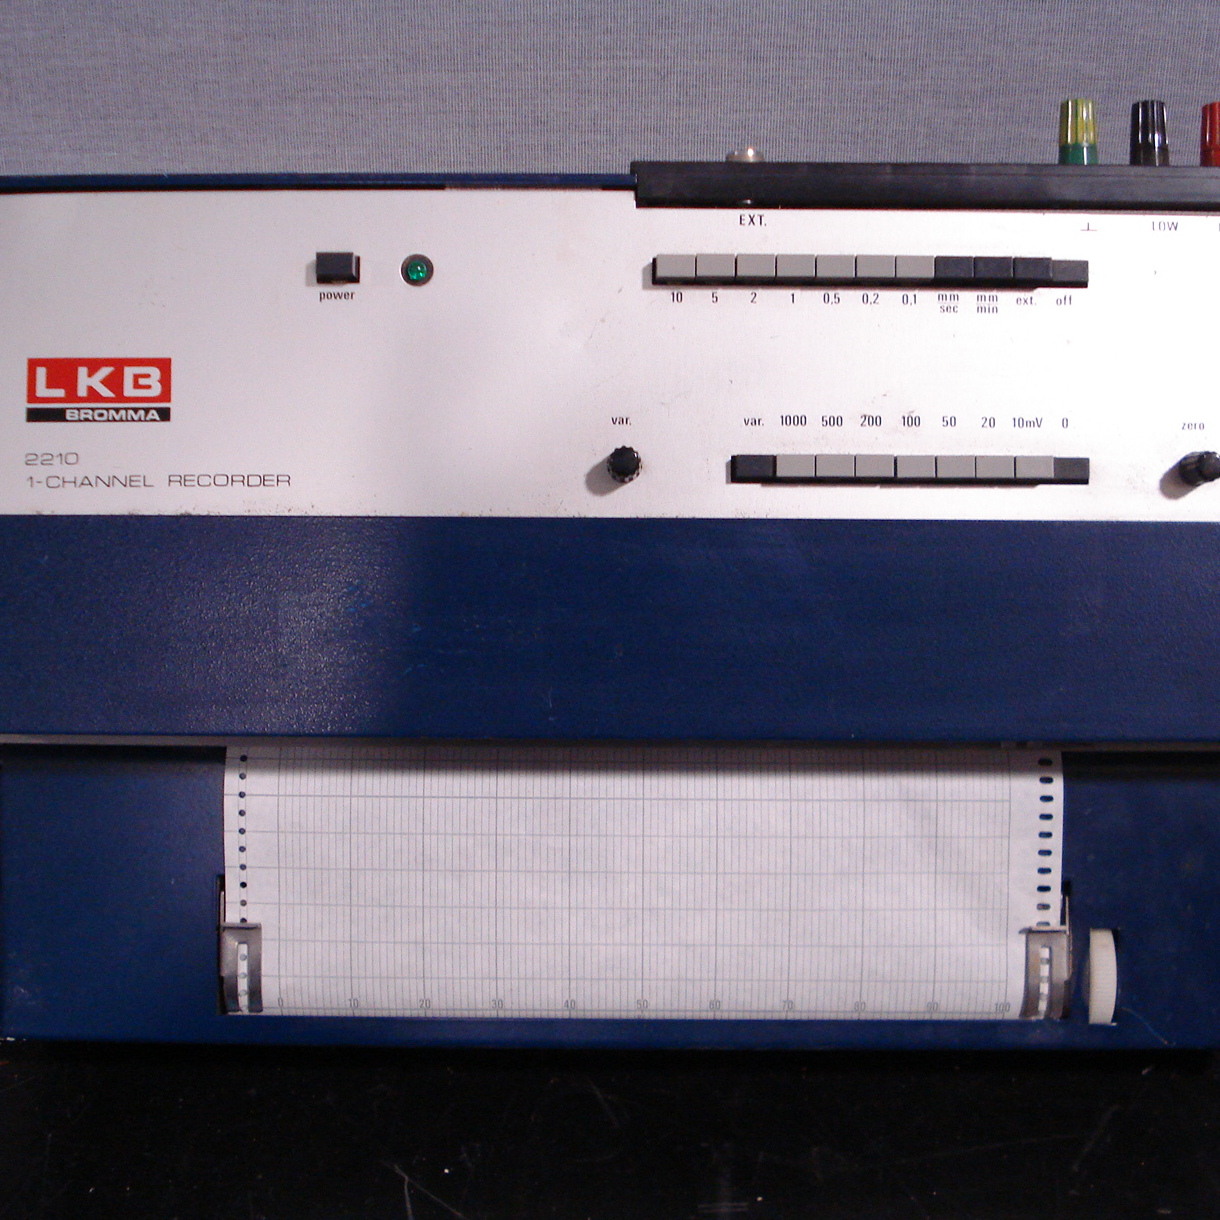 LKB Bromma 2210 1-Channel Recorder Image